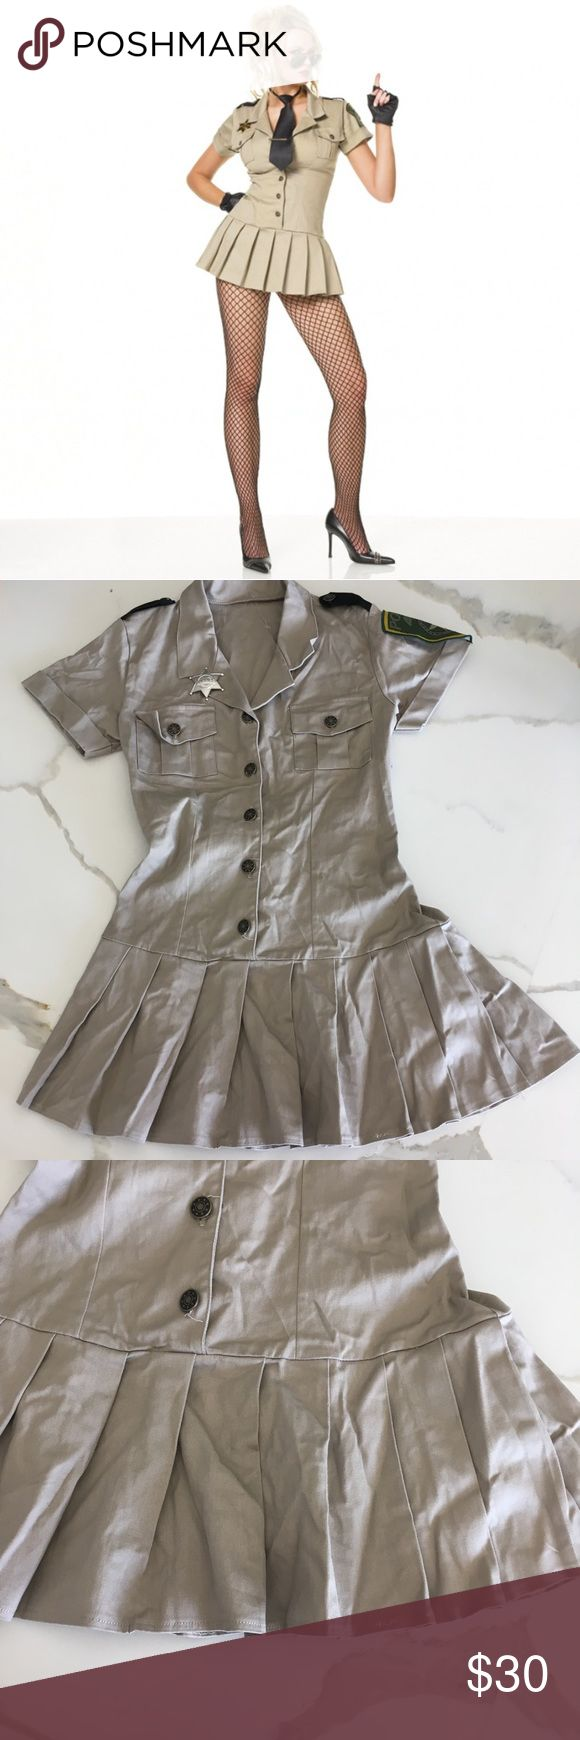 SHERIFF COSTUME ~ COP COSTUME ~ Halloween dress LEG AVENUE ~   Leg avenue brand  Halloween dress  Beige tan color  Mini dress  Sexy style  Pleated skirt  Button front closure  Silver sheriff badge on front  Size small  Sheriff costume  Halloween costume  Cop costume  Pristine condition  Worn only once  No packaging  *dress only leg avenue Dresses Mini